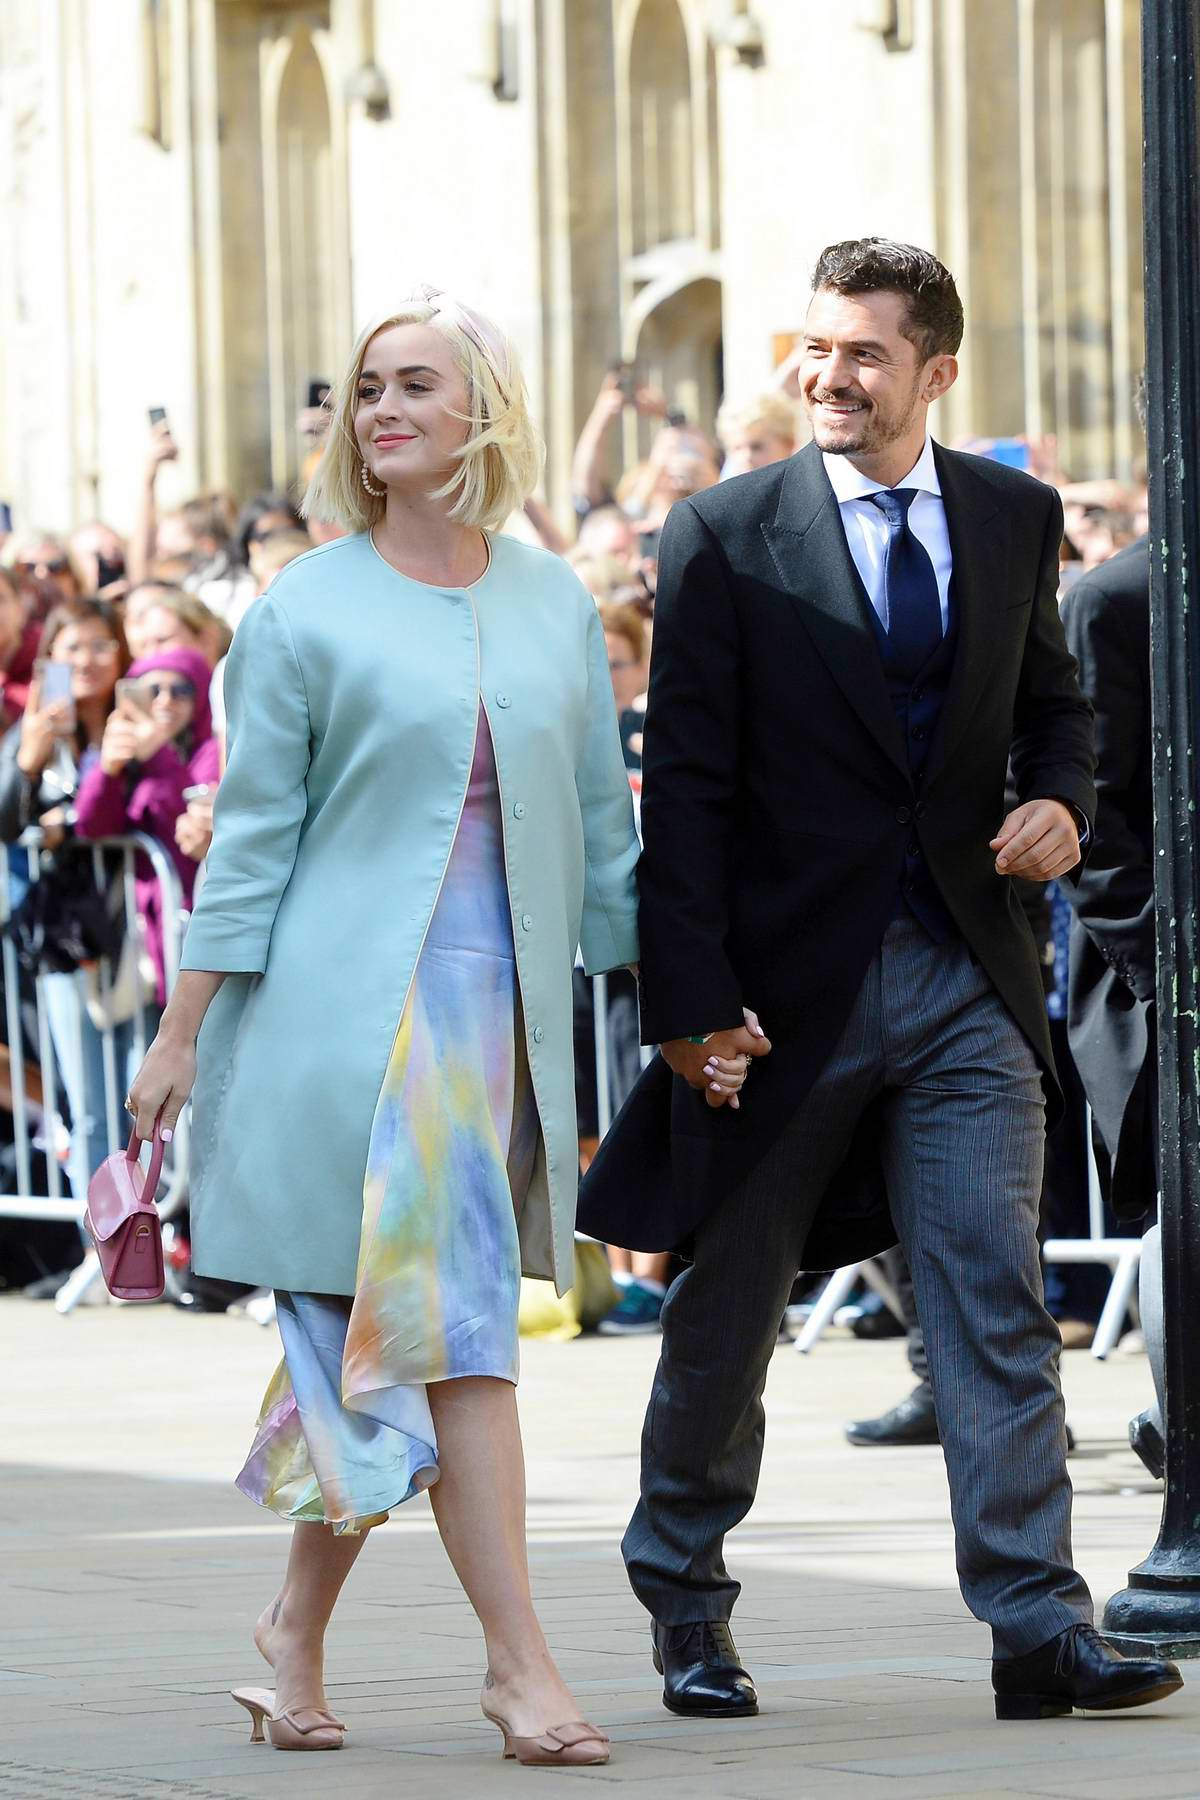 Katy Perry and Orlando Bloom attend the wedding of Ellie Goulding and Caspar Jopling at York Minster Cathedral in London, UK